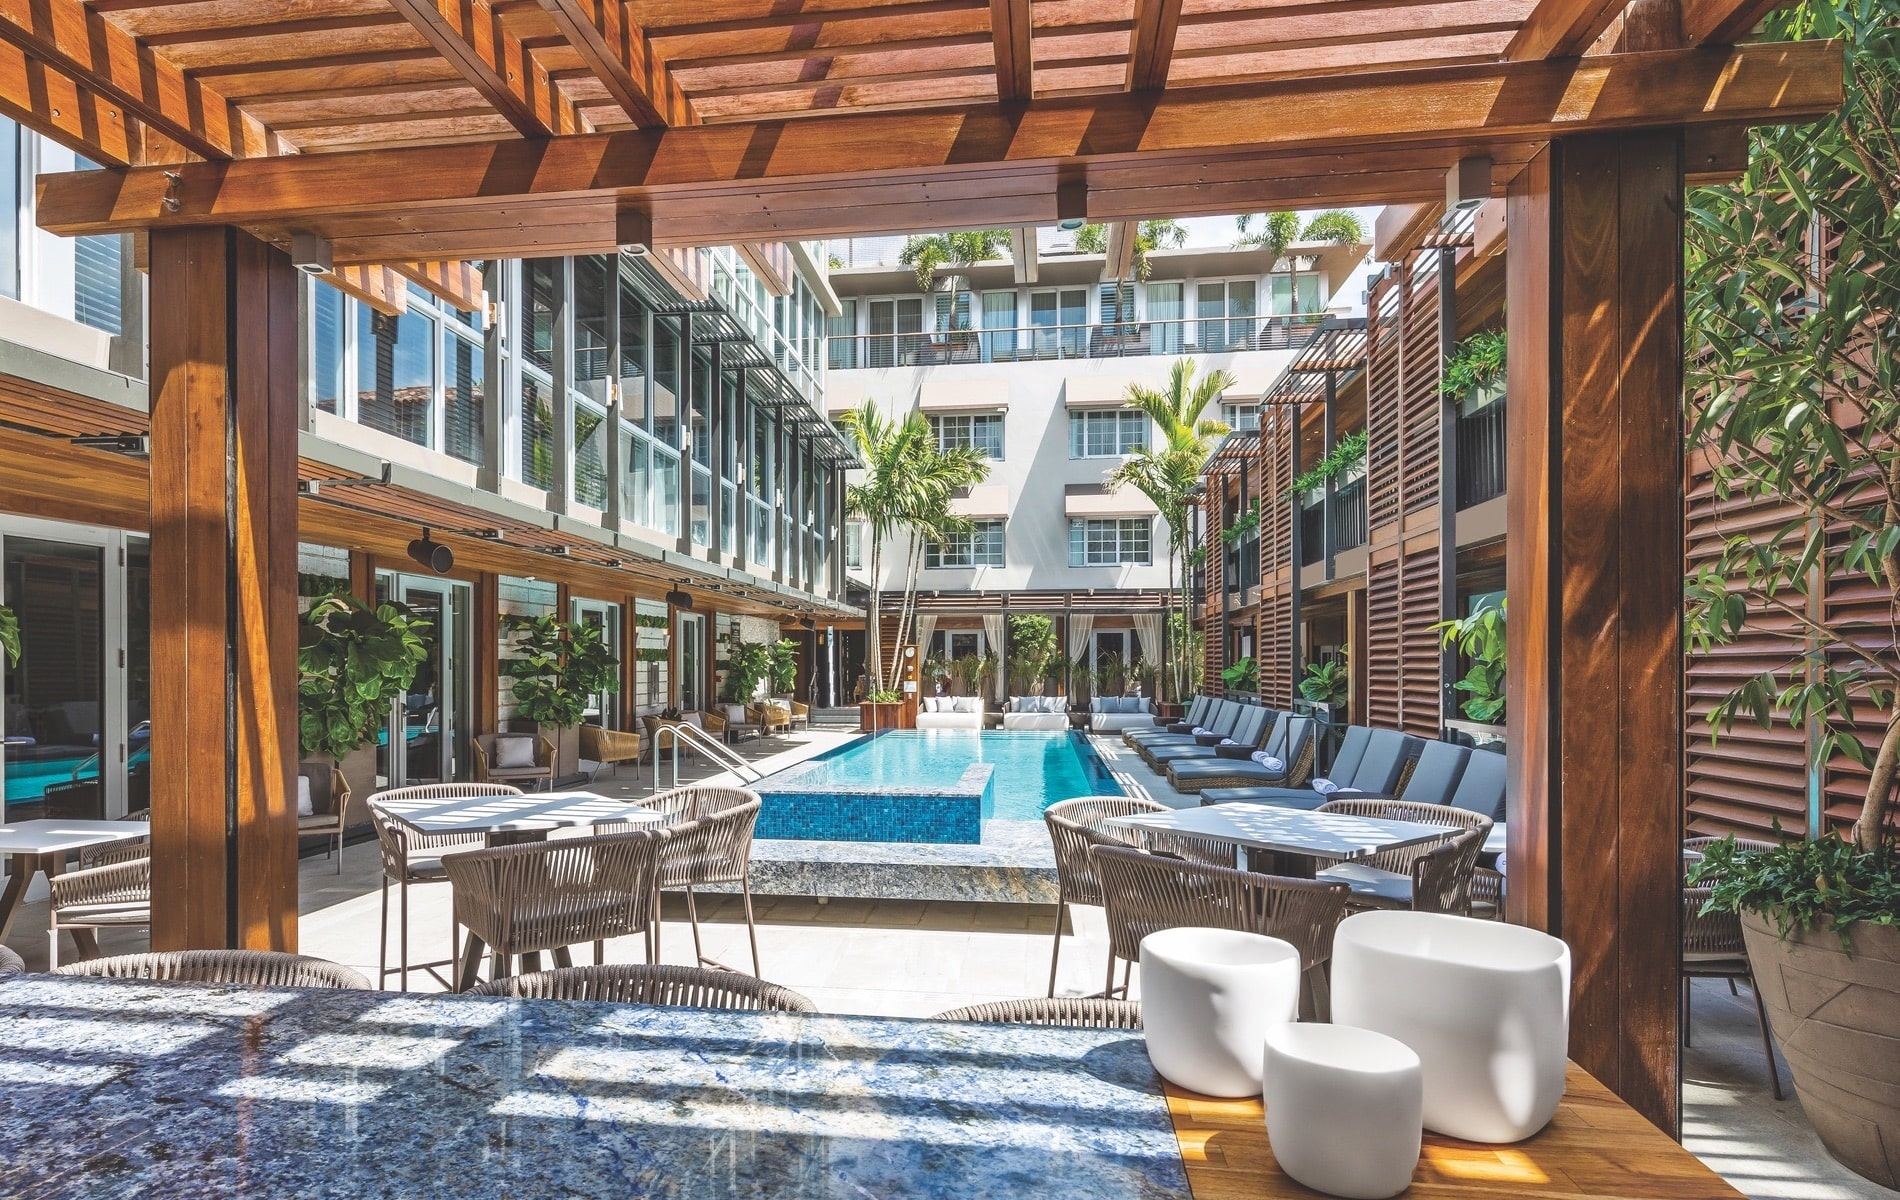 Lennox Hotel kept the Art Deco facade of their historic building intact but performed major renovations to create a sleek, inviting interior and beautiful courtyard pool area.